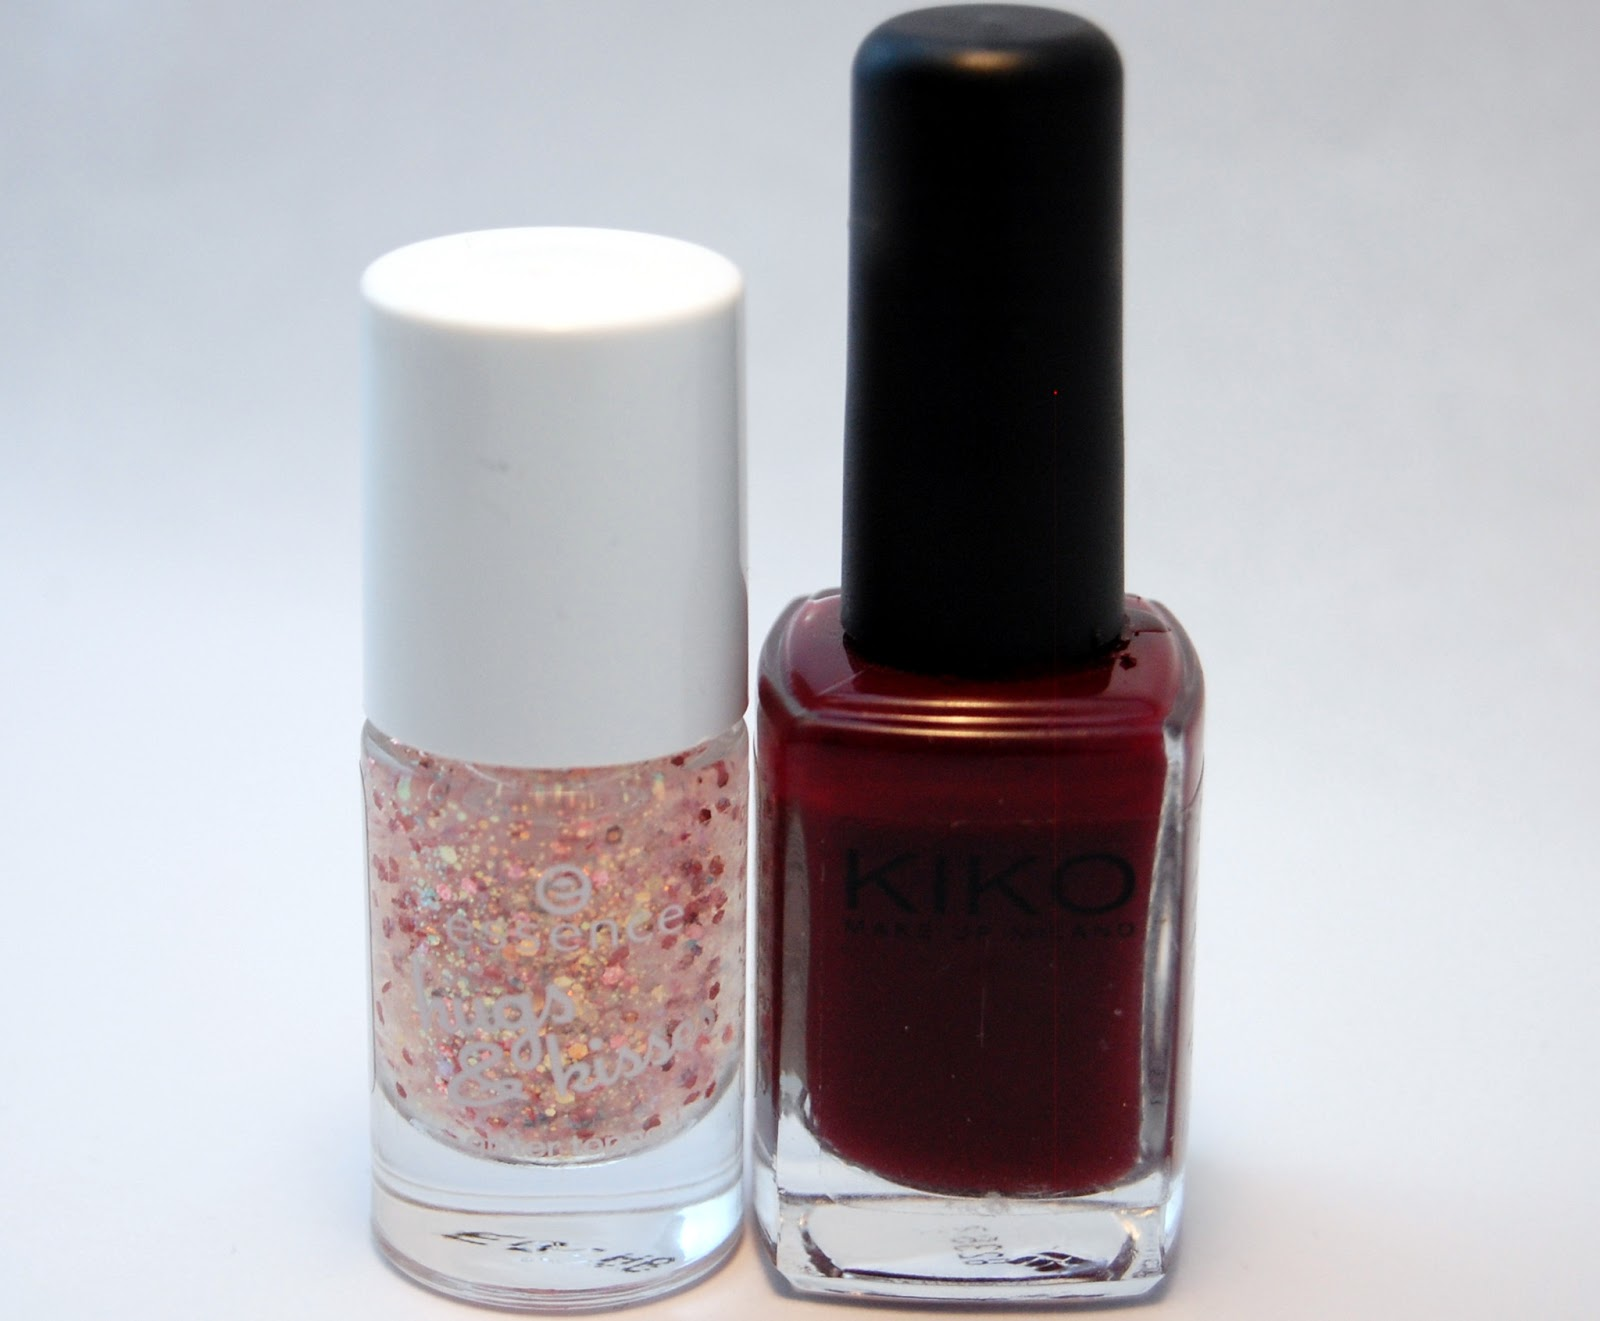 Essence More Than Words,Kiko 127